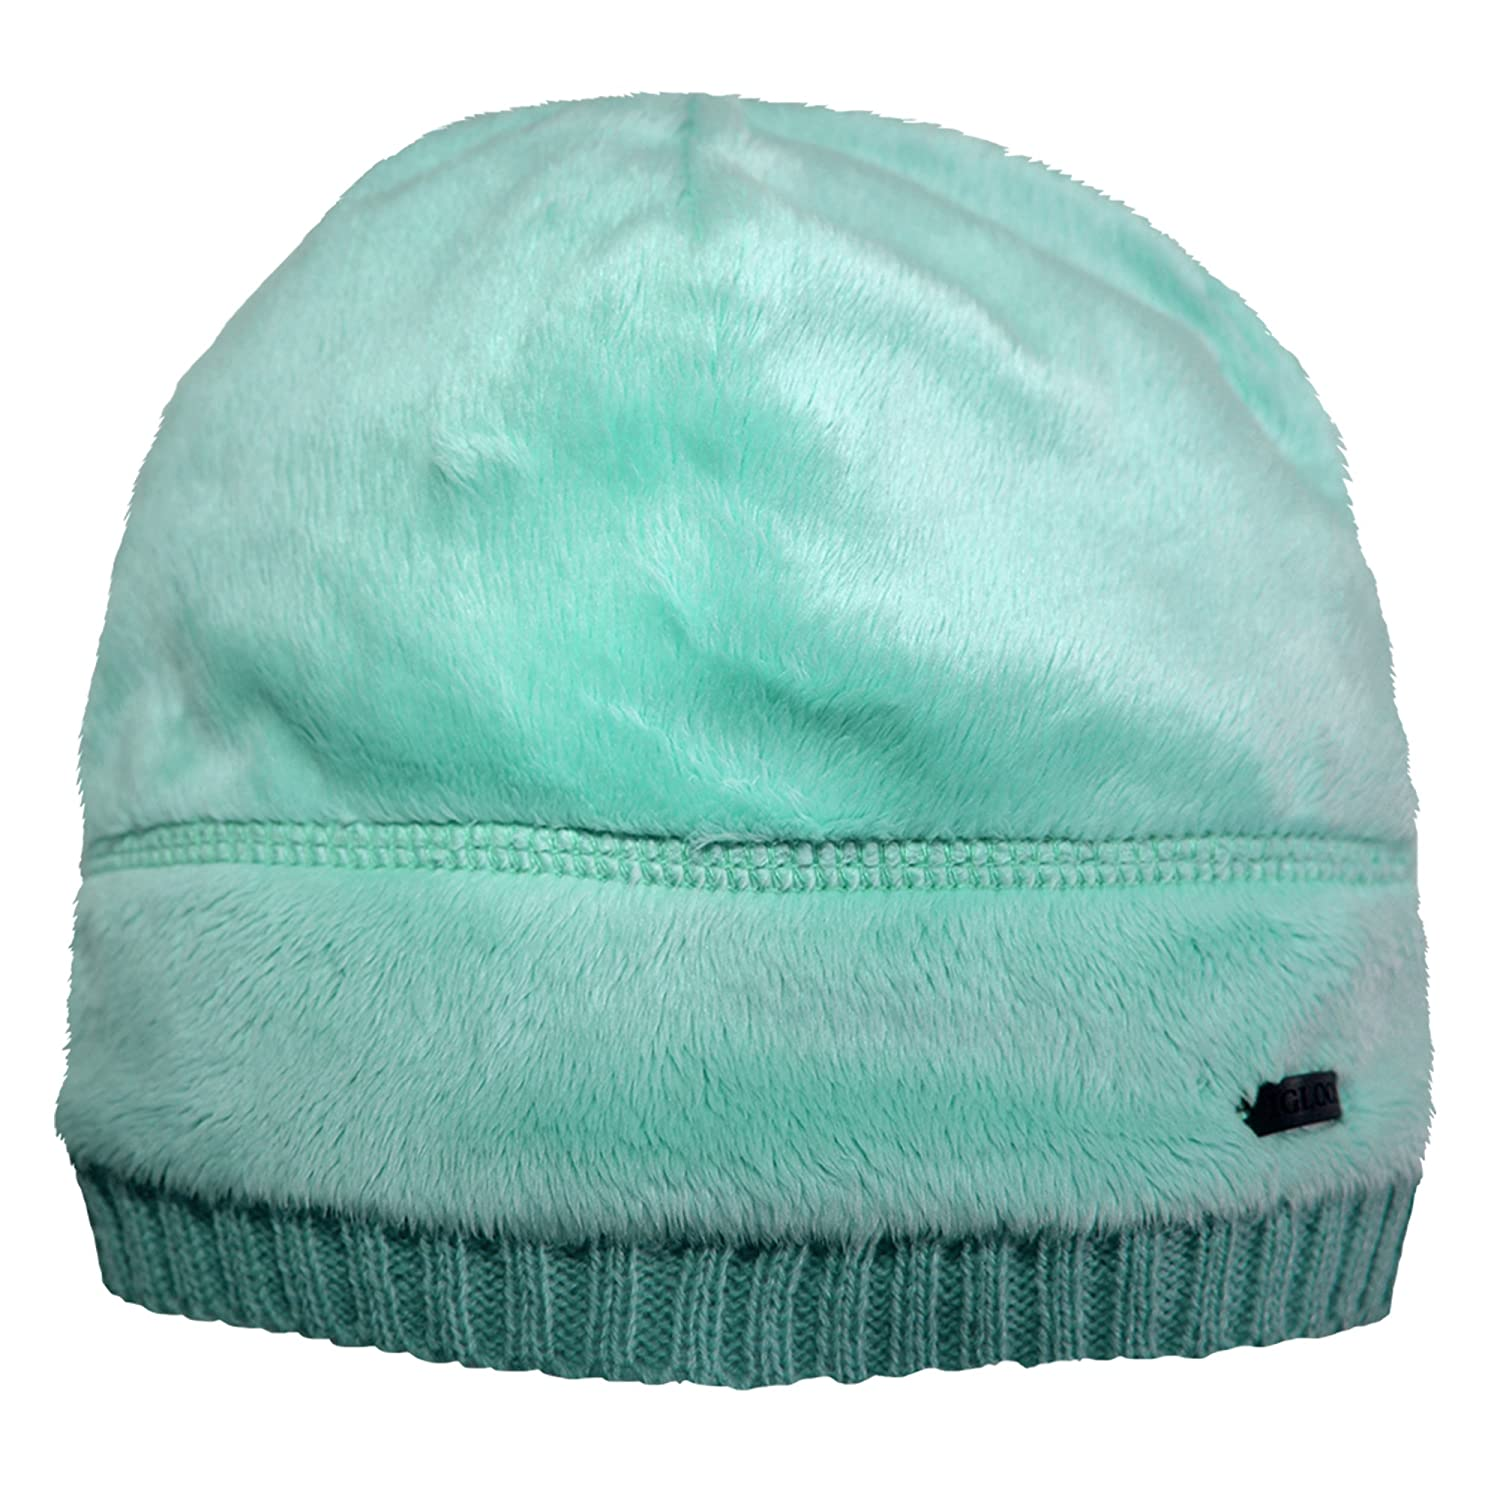 Igloos Girls Butter Pile Fleece Beanie Aqua Sky One Size/Size 7-16 Jacob ASH (Outdoors) GH066